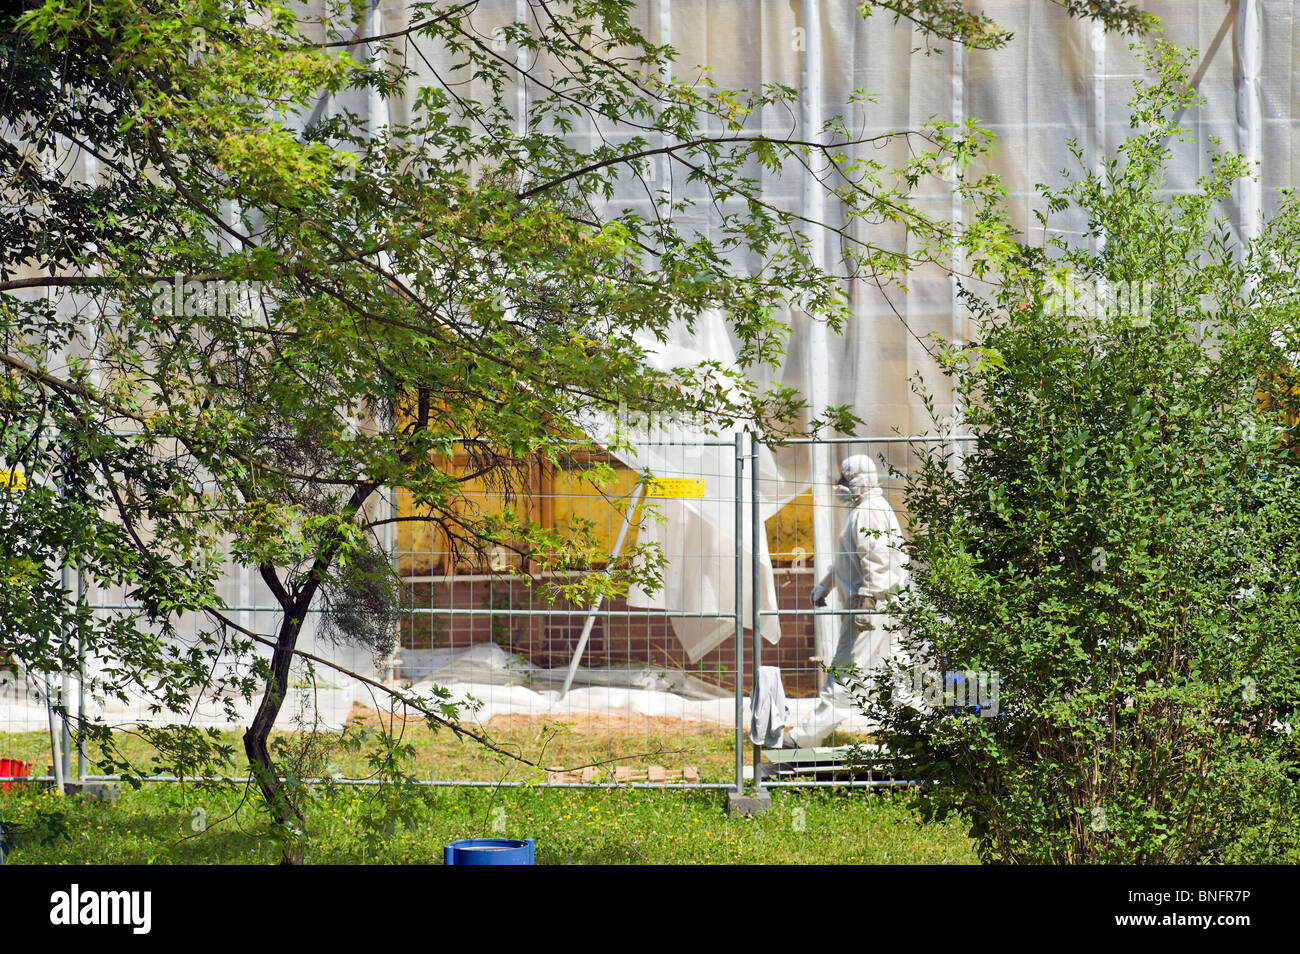 man and nature asbest Asbestos disposal dumping cleaning disposing removal full inherited waste polluted areas protective Stock Photo